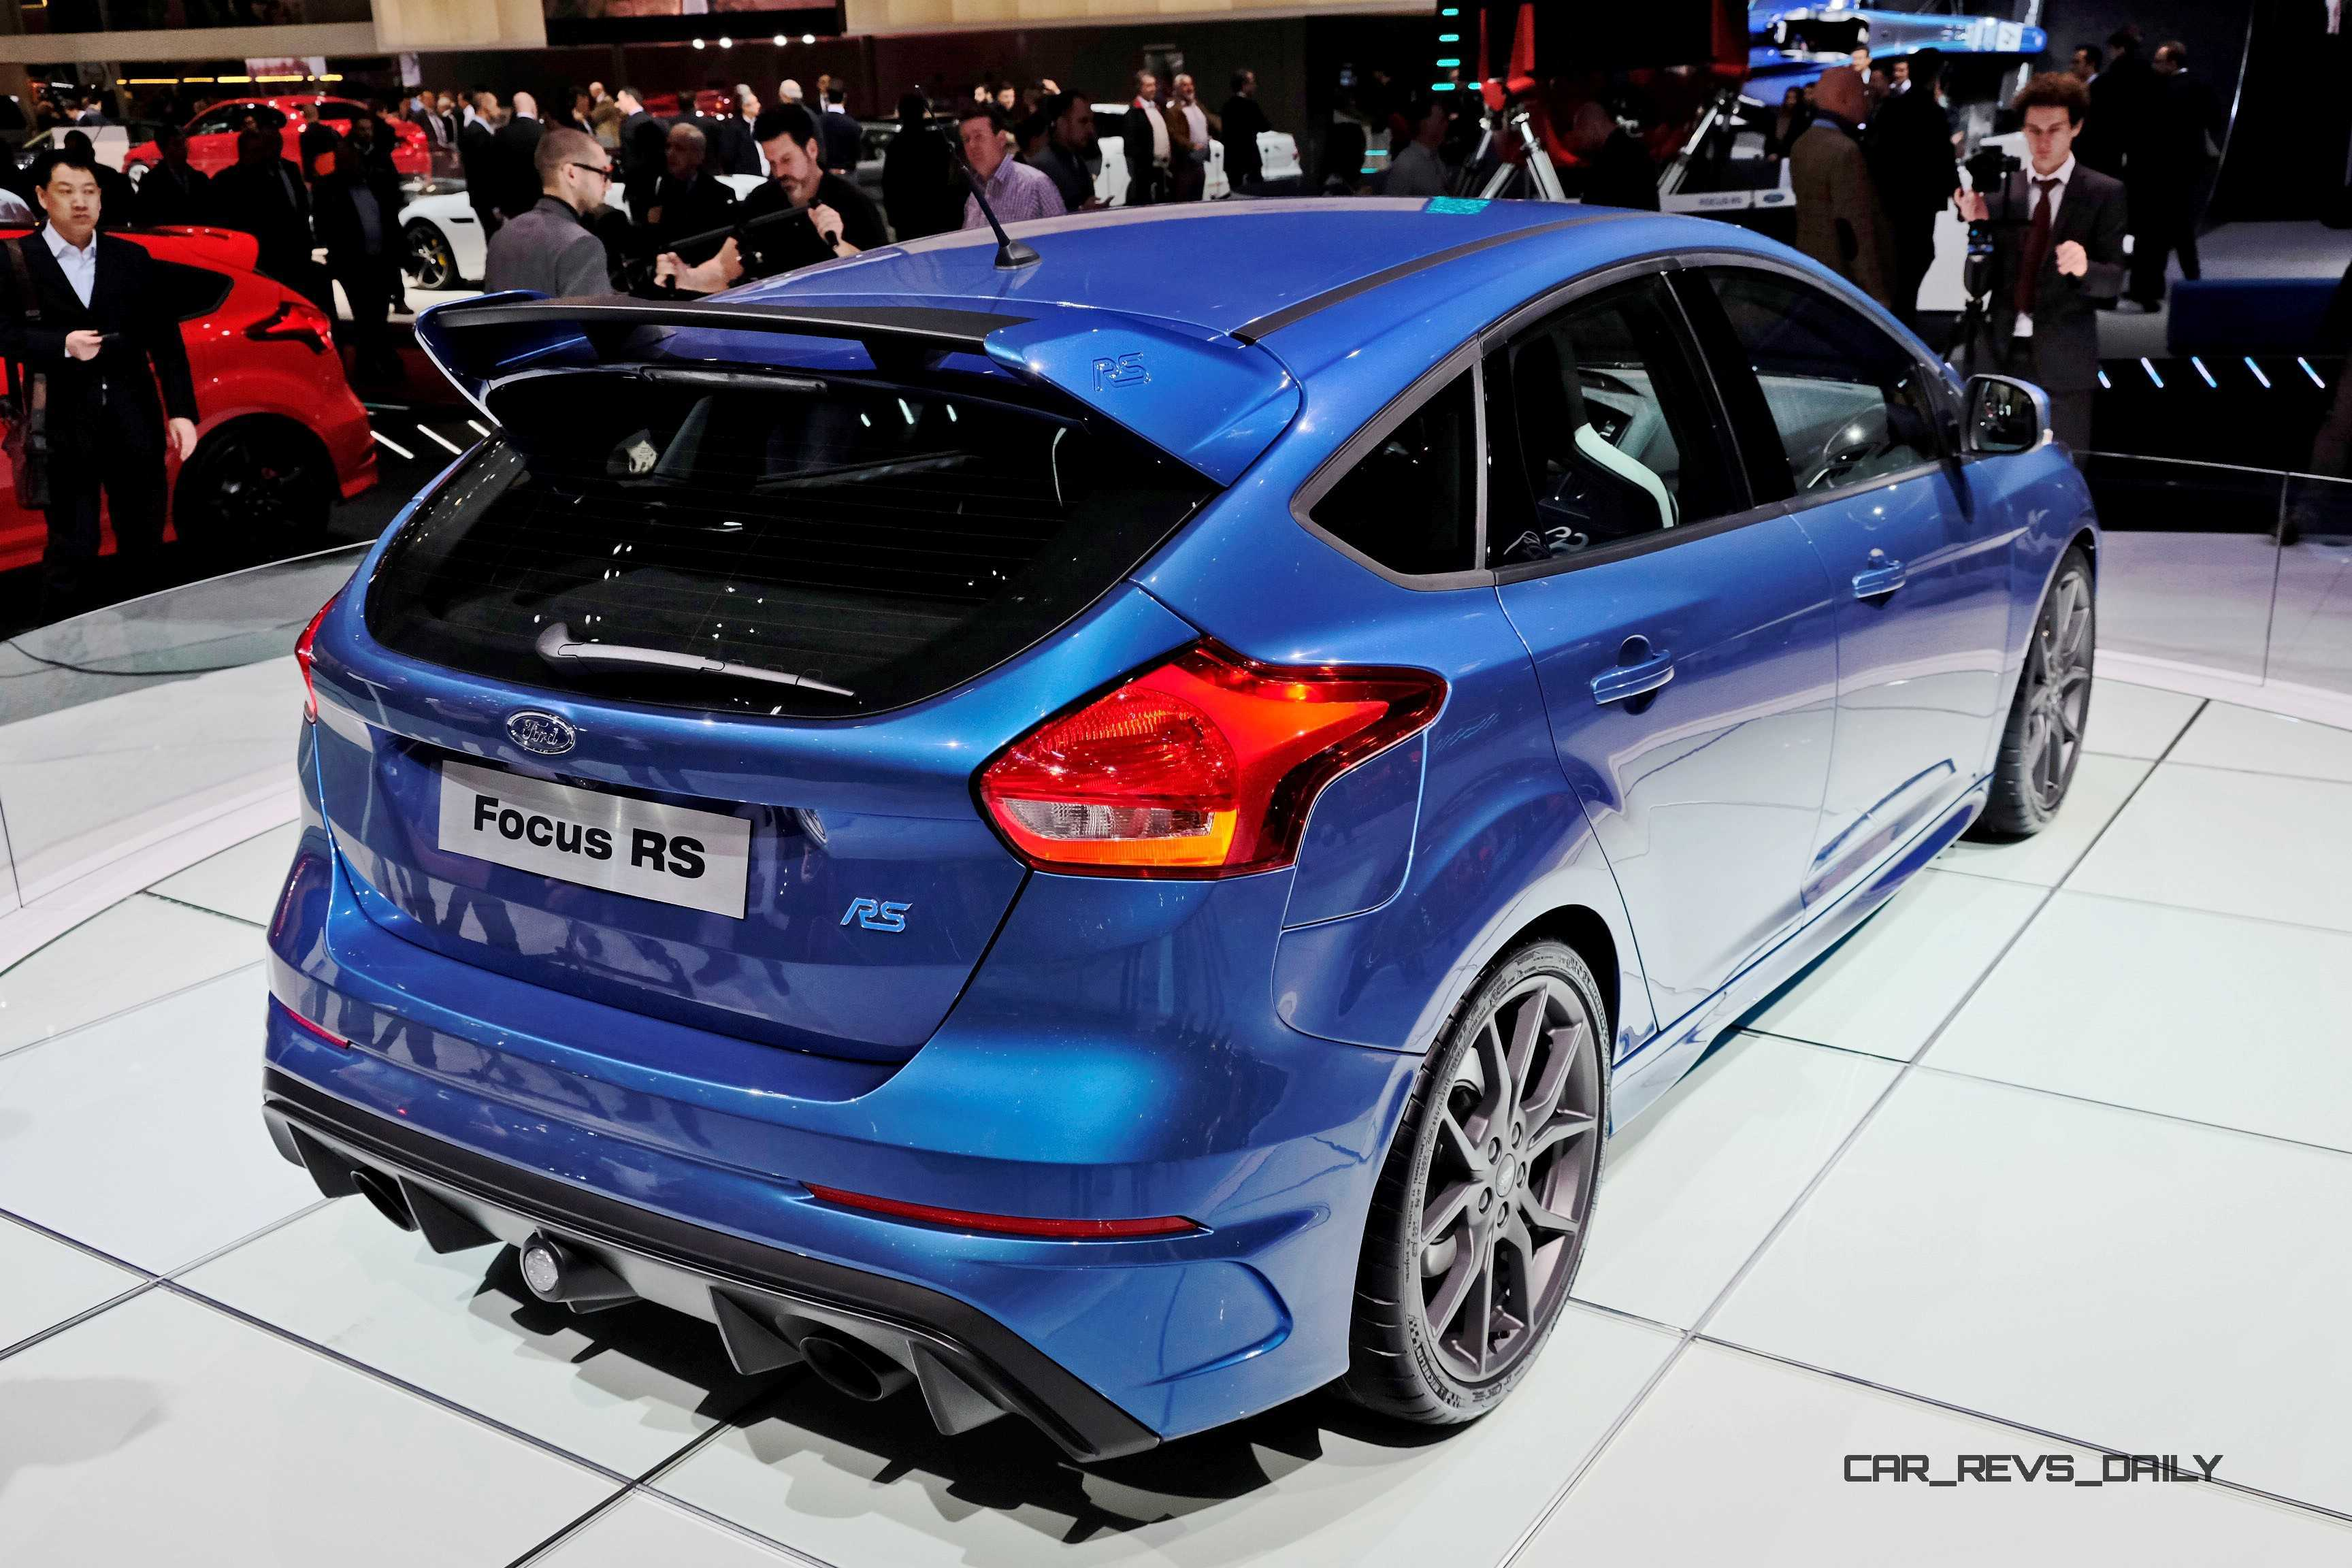 Nitrous Blue 2016 Ford Focus RS Coming to NYC Next Week! USA Showrooms ...